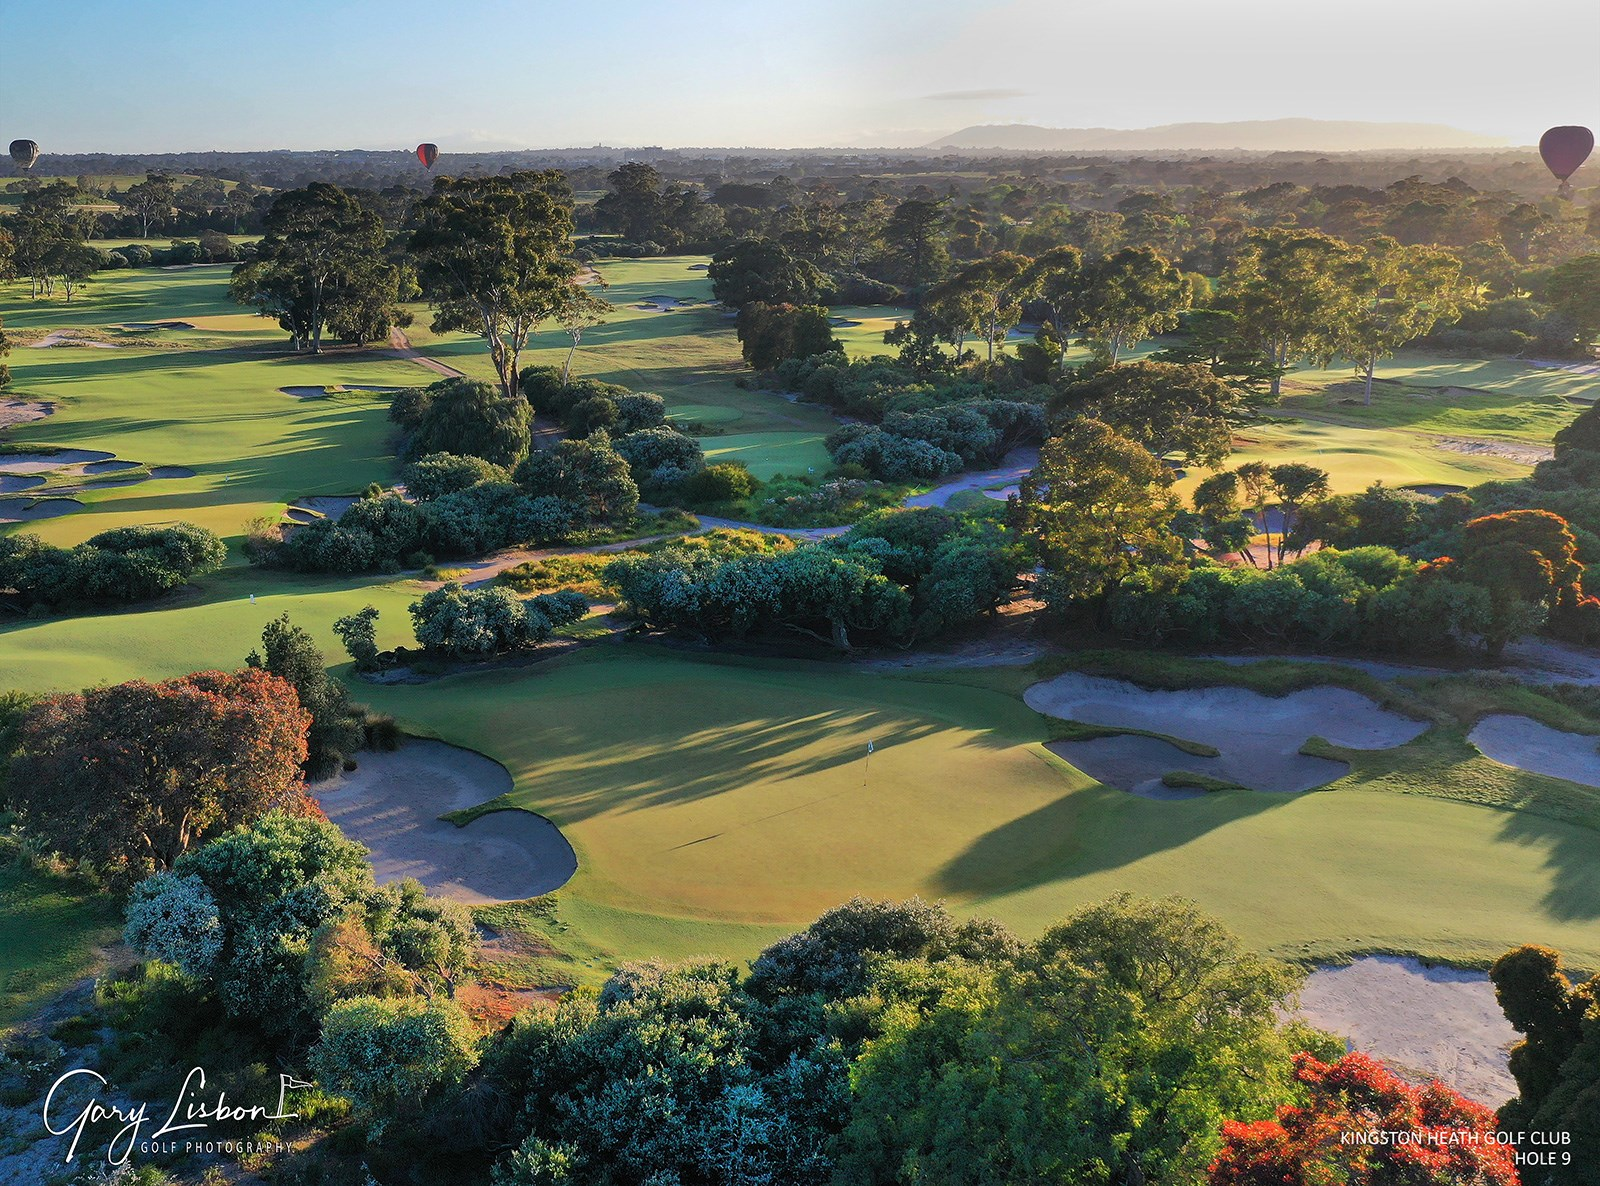 Kingston Heath Golf Club Hole 9